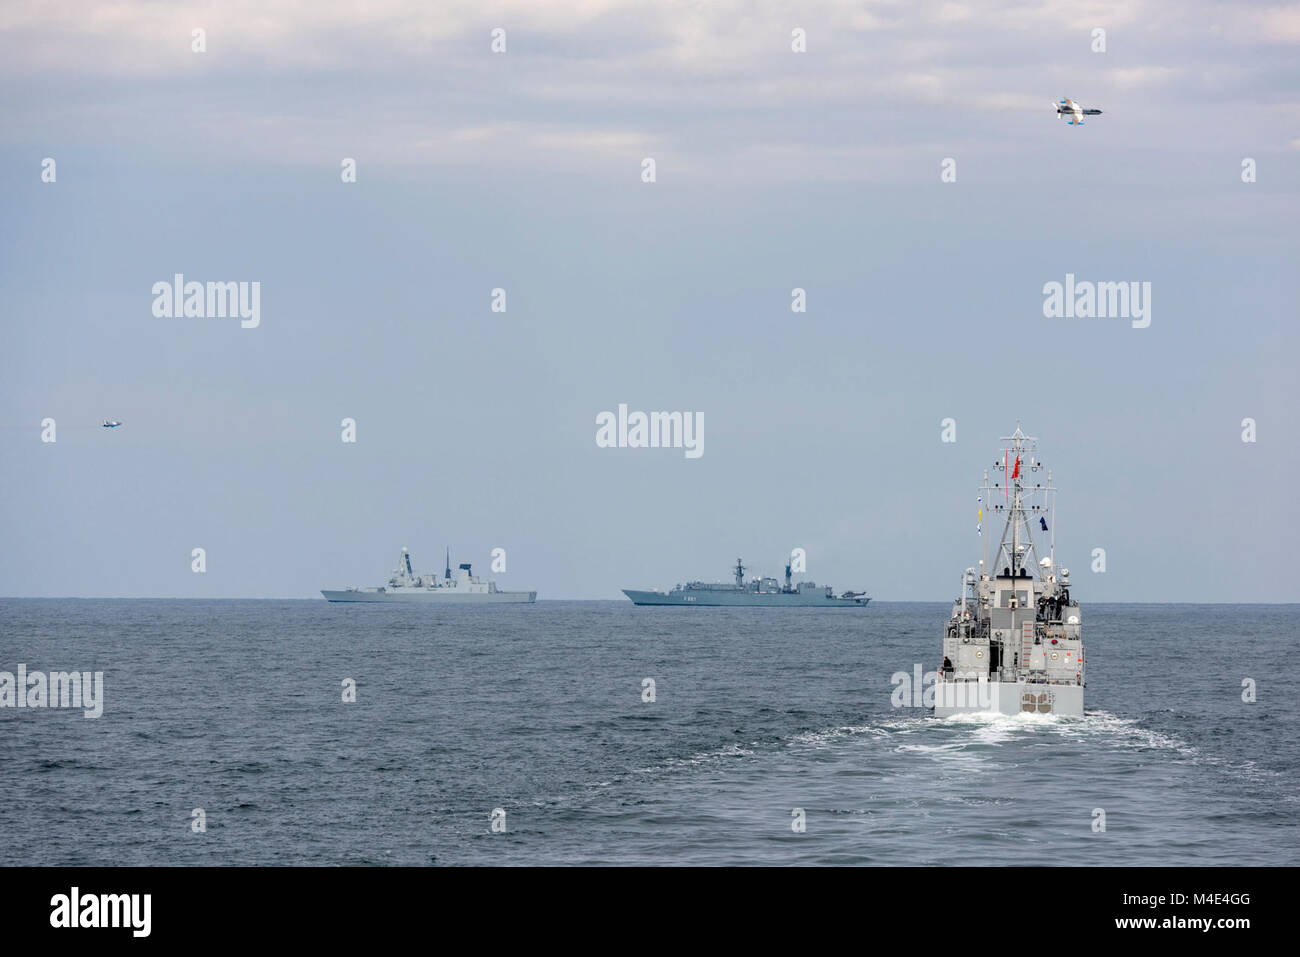 BLACK SEA (Feb 05. 2018) Two Romanian Air Force MiG 21s, fly over NATO vessels (SNMG2 and SNMCMG2) during an Air Stock Photo